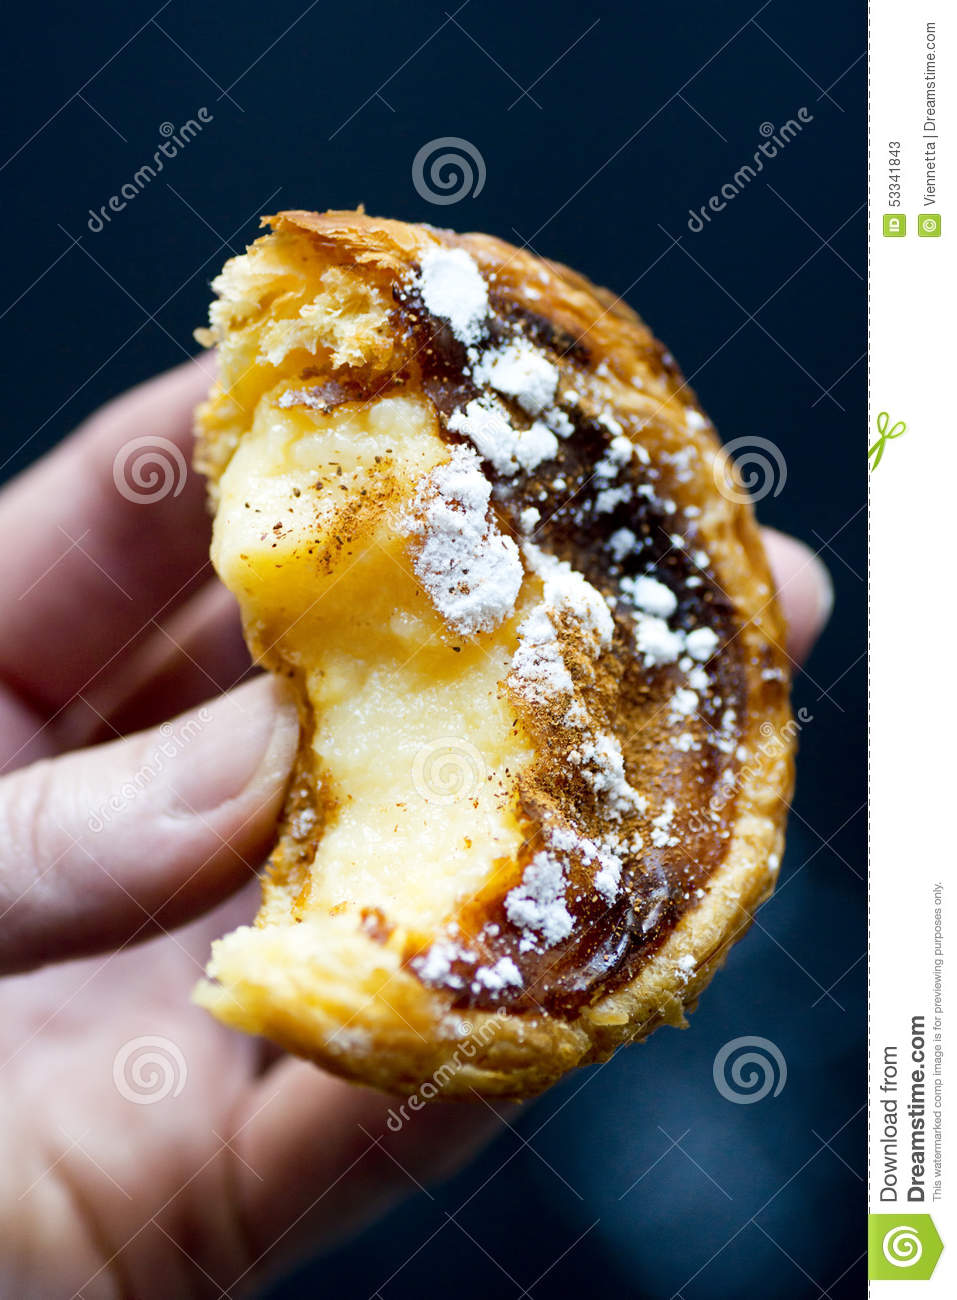 bite taken out of a pastel de nata or portuguese custard tart stock photo image 53341843. Black Bedroom Furniture Sets. Home Design Ideas